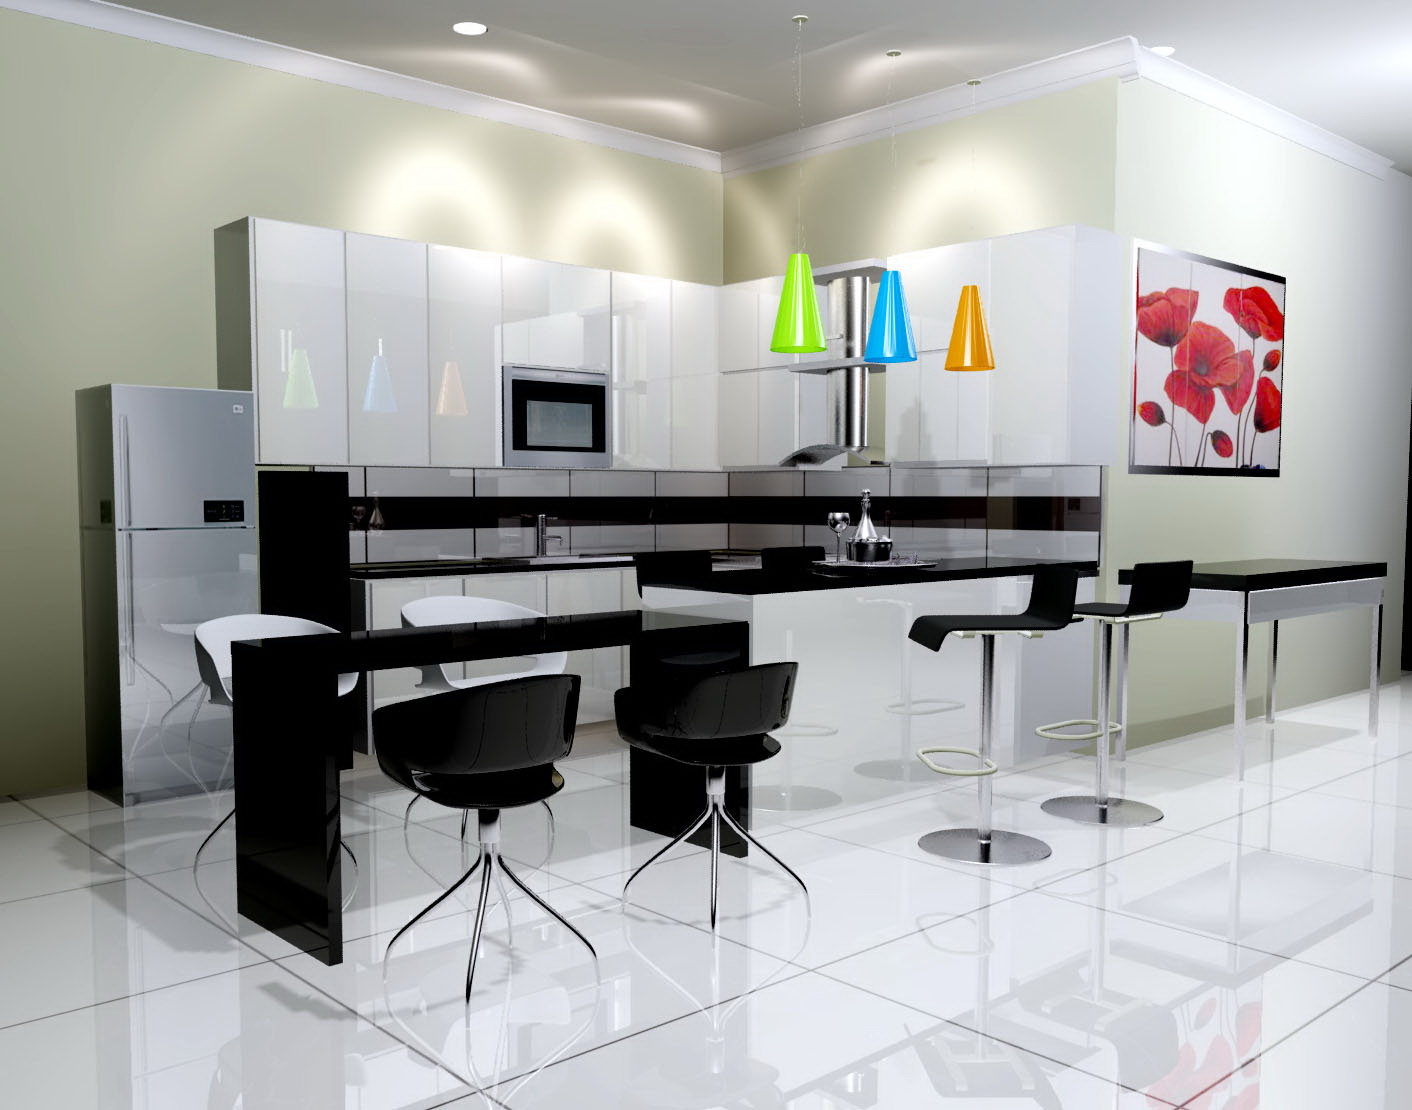 Idesign arsitektur pantry hitam putih for Kitchen set hitam putih